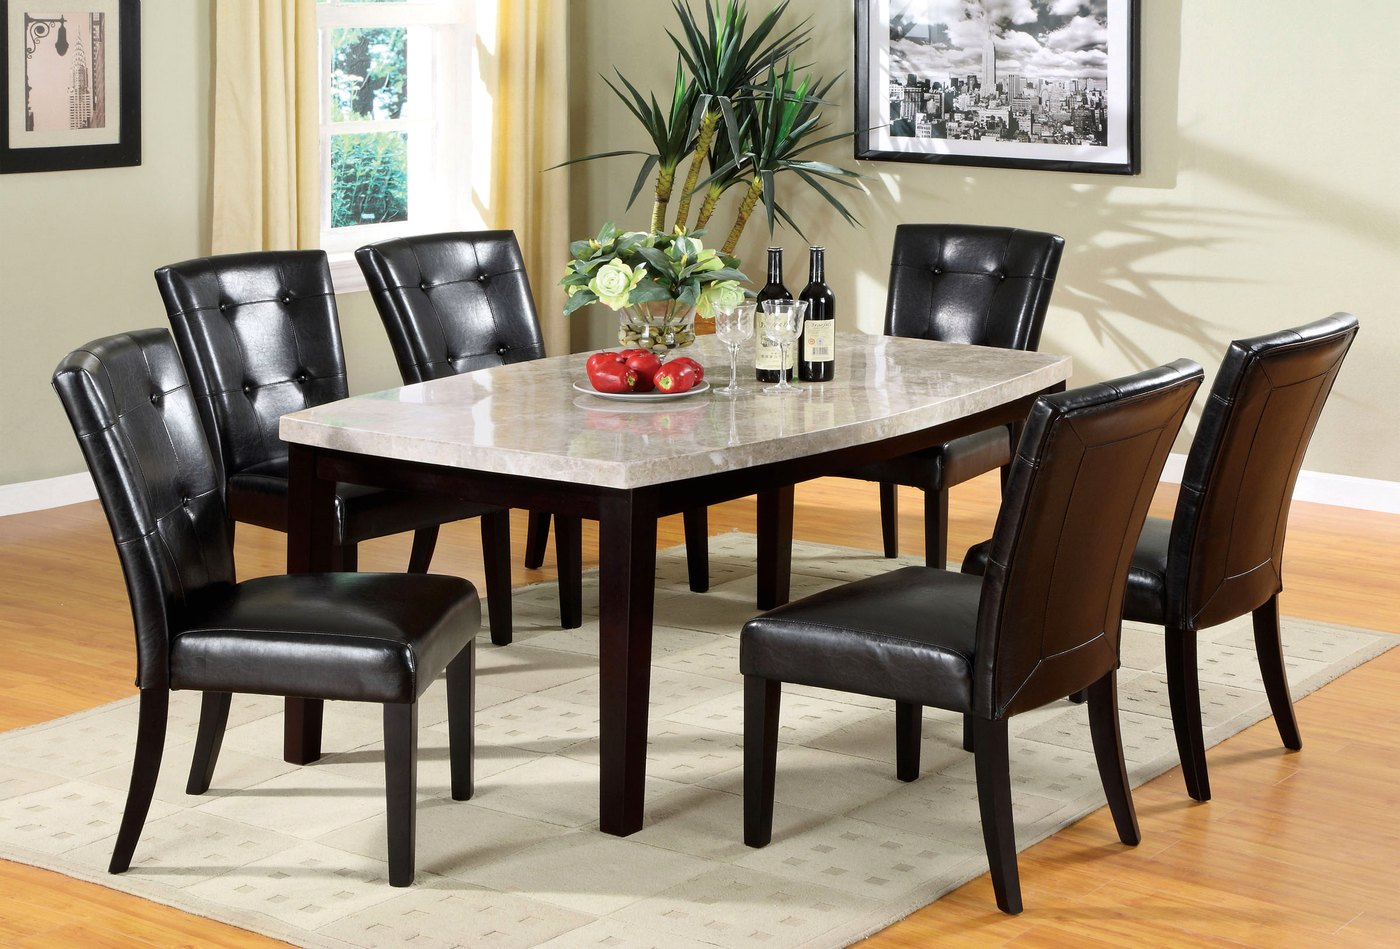 espresso table and chairs swing chair ikman marion i contemporary casual dining set with